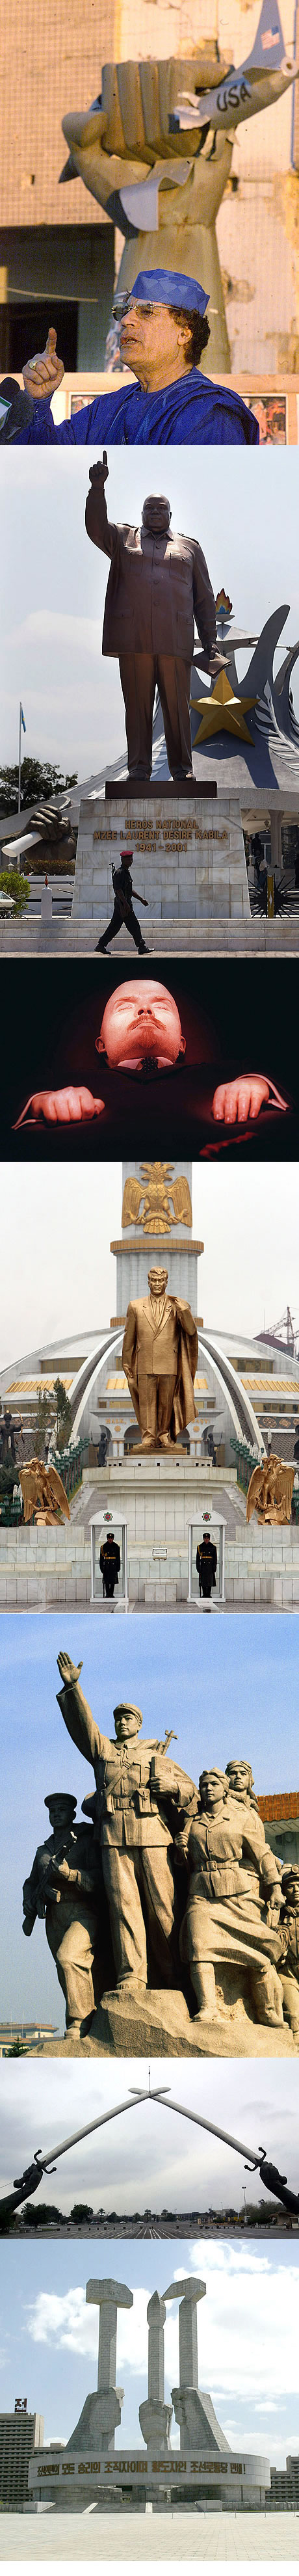 7 Wonders of the Totalitarian World